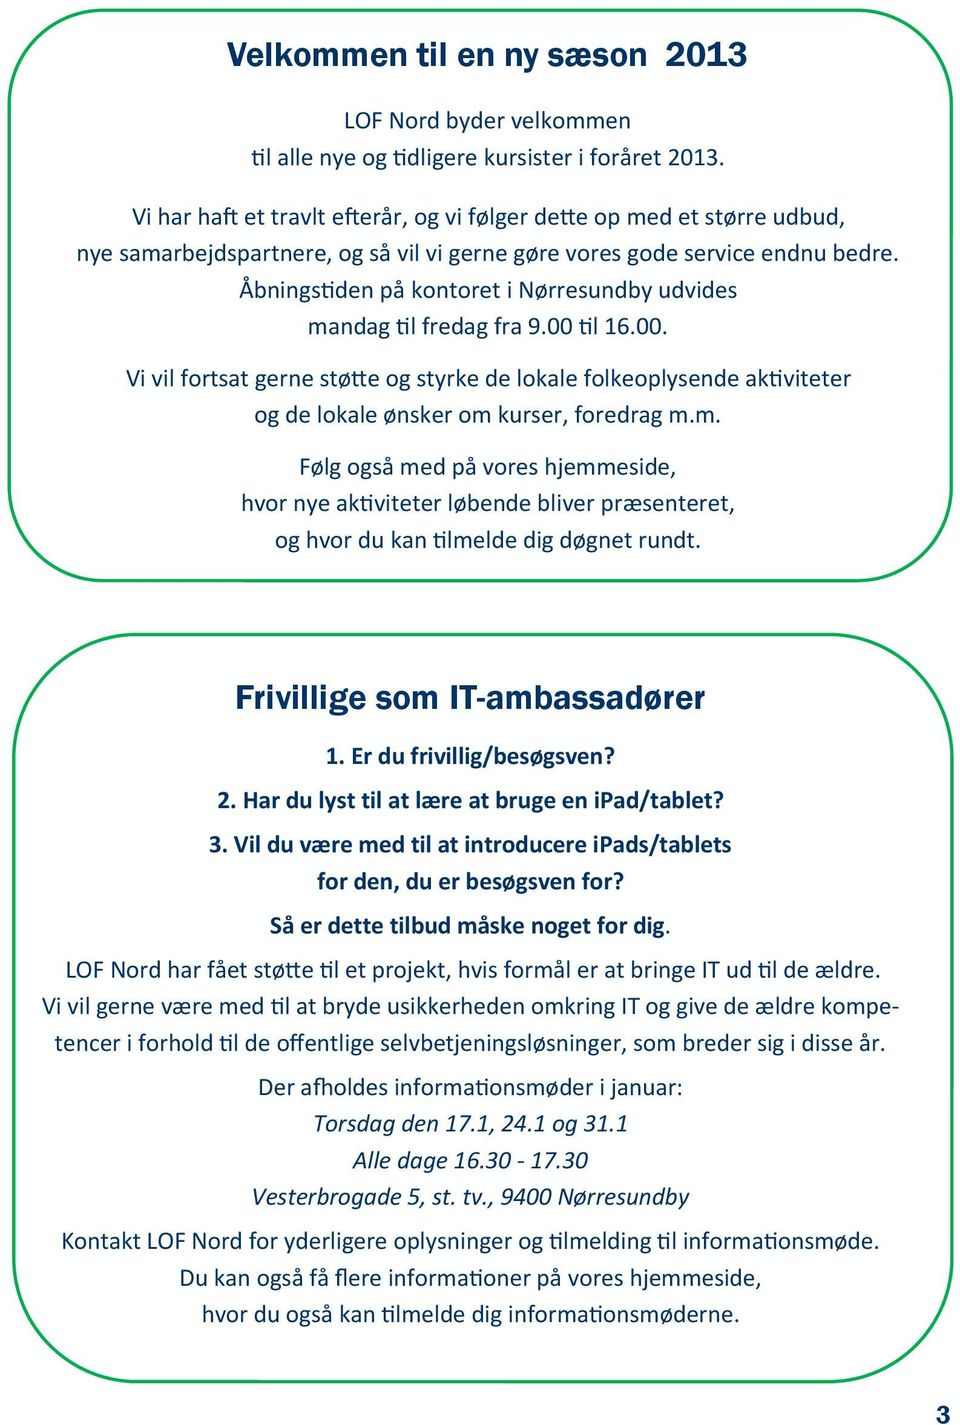 Frivillig som IT-ambassadørr 1. Er du frivillig/bsøgsvn? 2. Har du lyst til at lær at brug n ipad/tablt? 3. Vil du vær md til at introducr ipads/tablts for dn, du r bsøgsvn for?